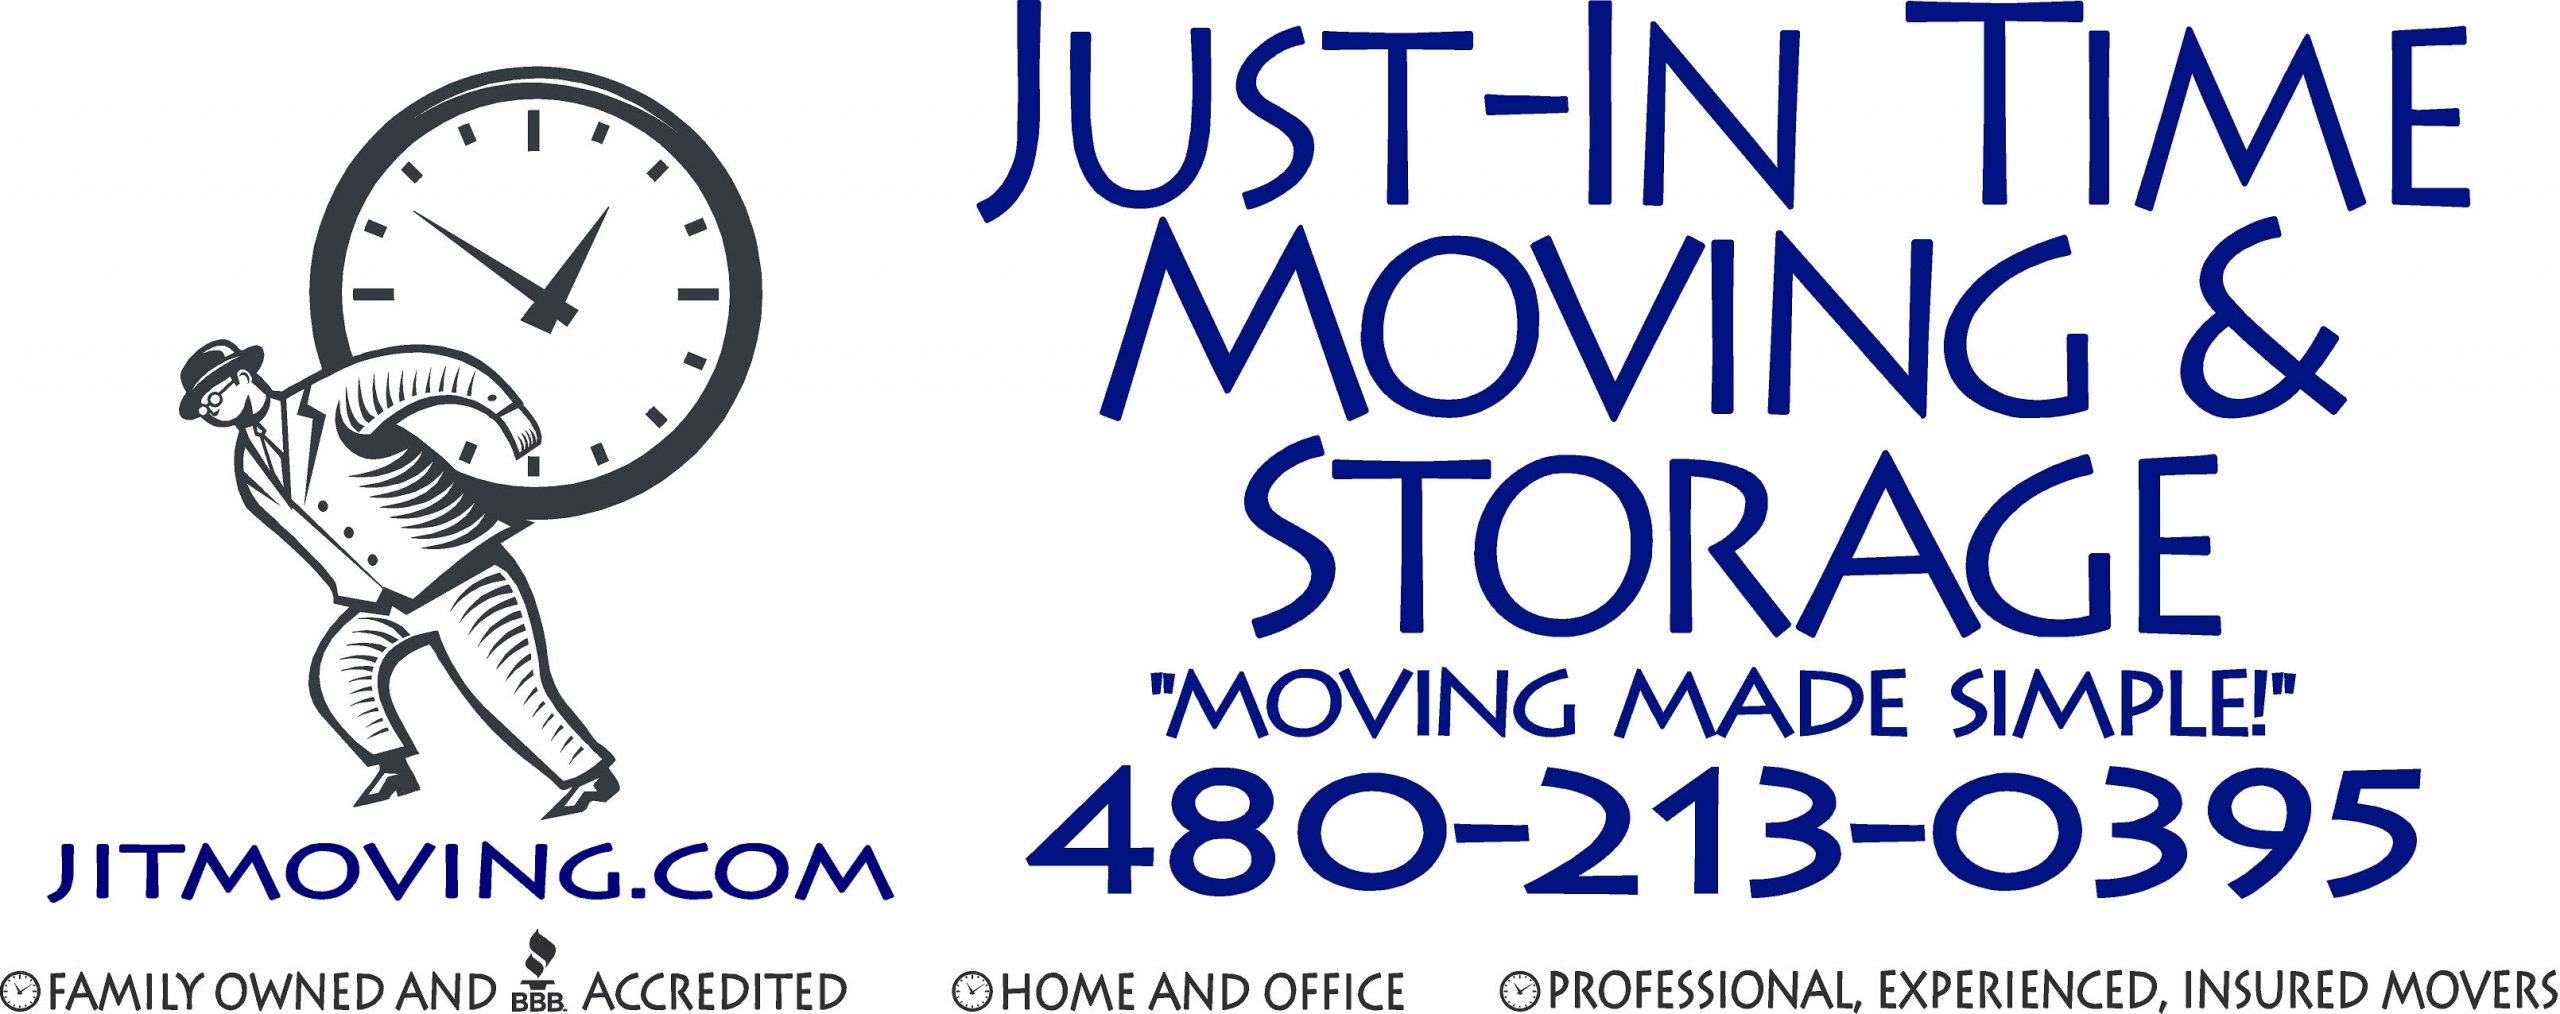 Just-In Time Moving & Storage